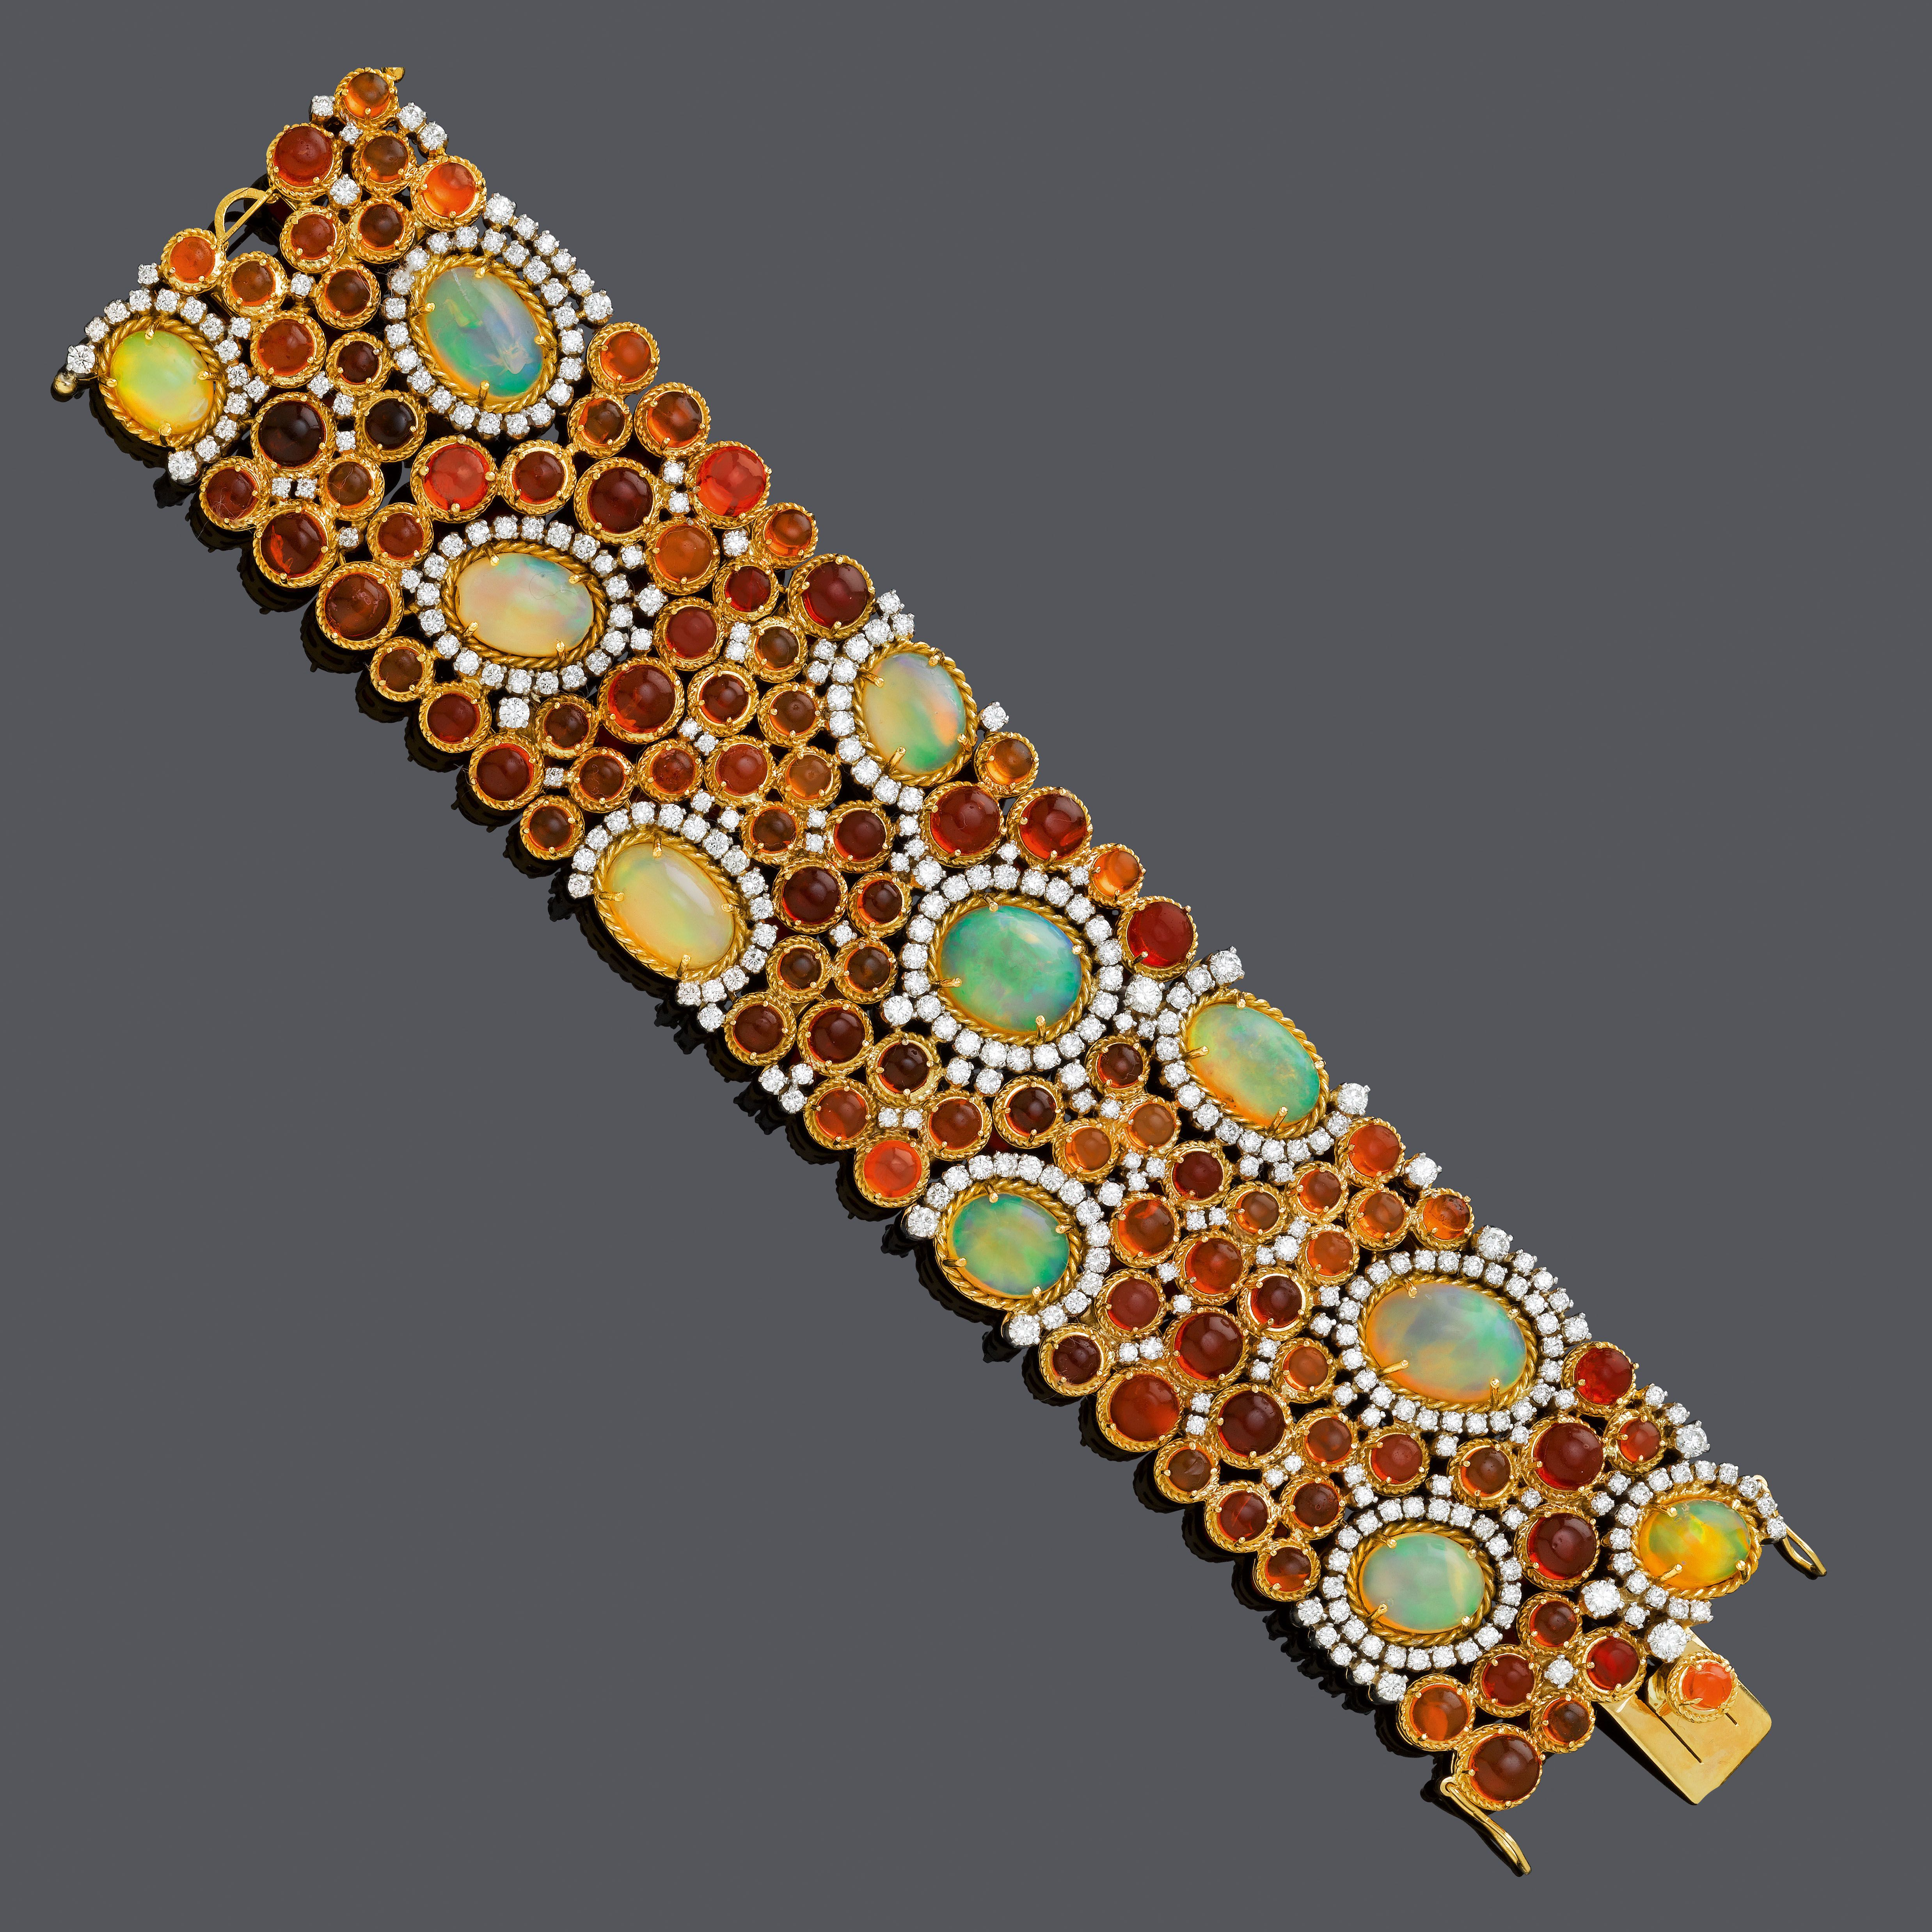 Opal And Diamond Bracelet White Yellow Gold 750 Set With 11 Oval Opals Within A Surround Numerous Fire Cabochons